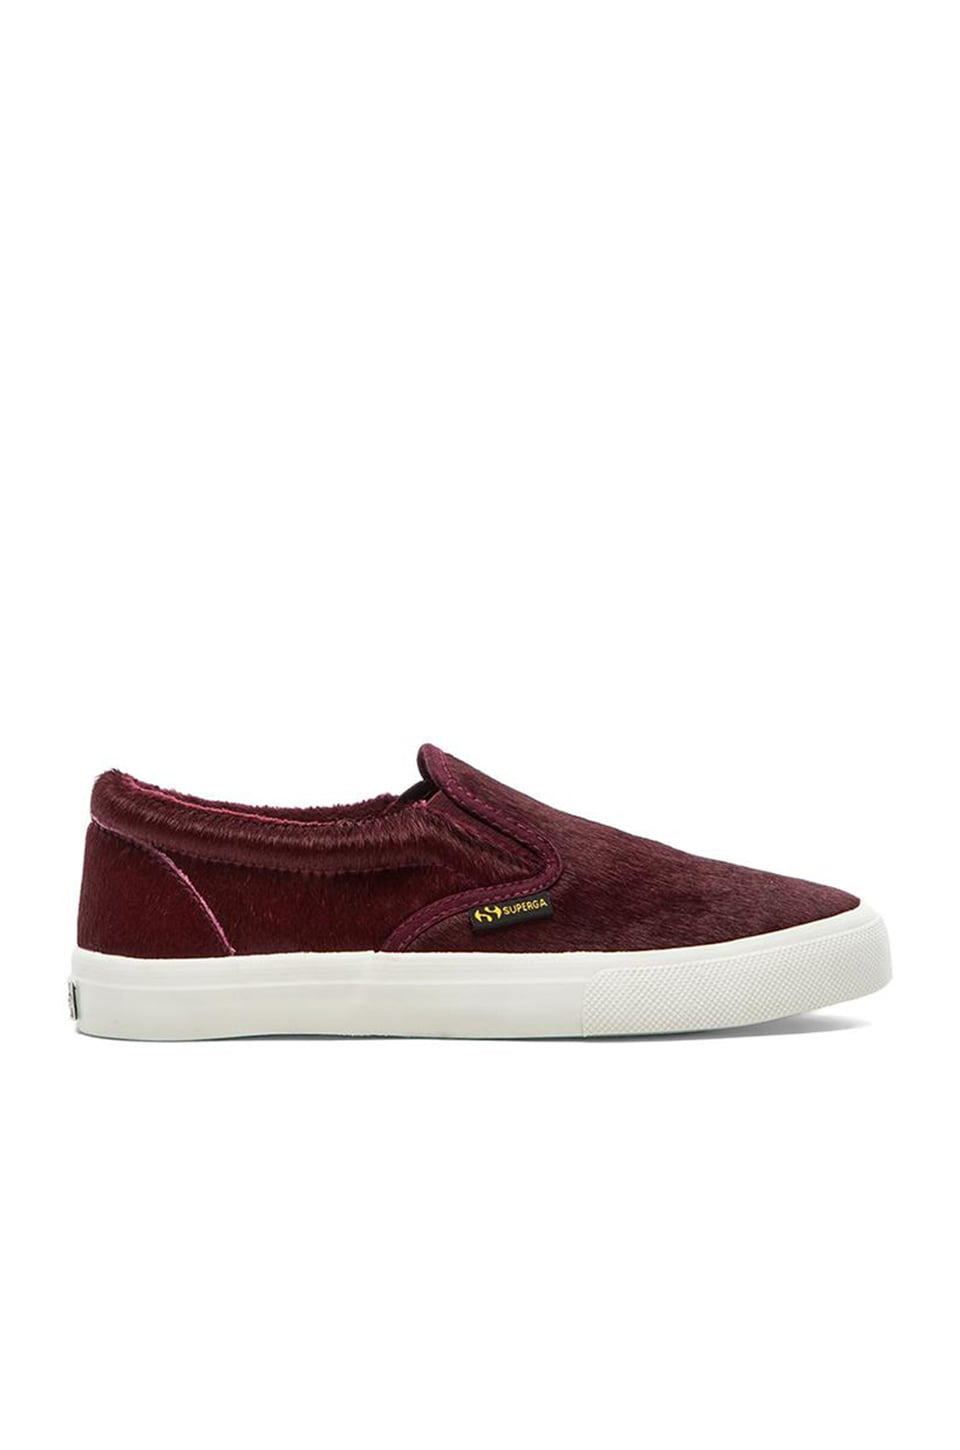 Superga Leather Horse Slip On with Cow Fur in Bordeaux